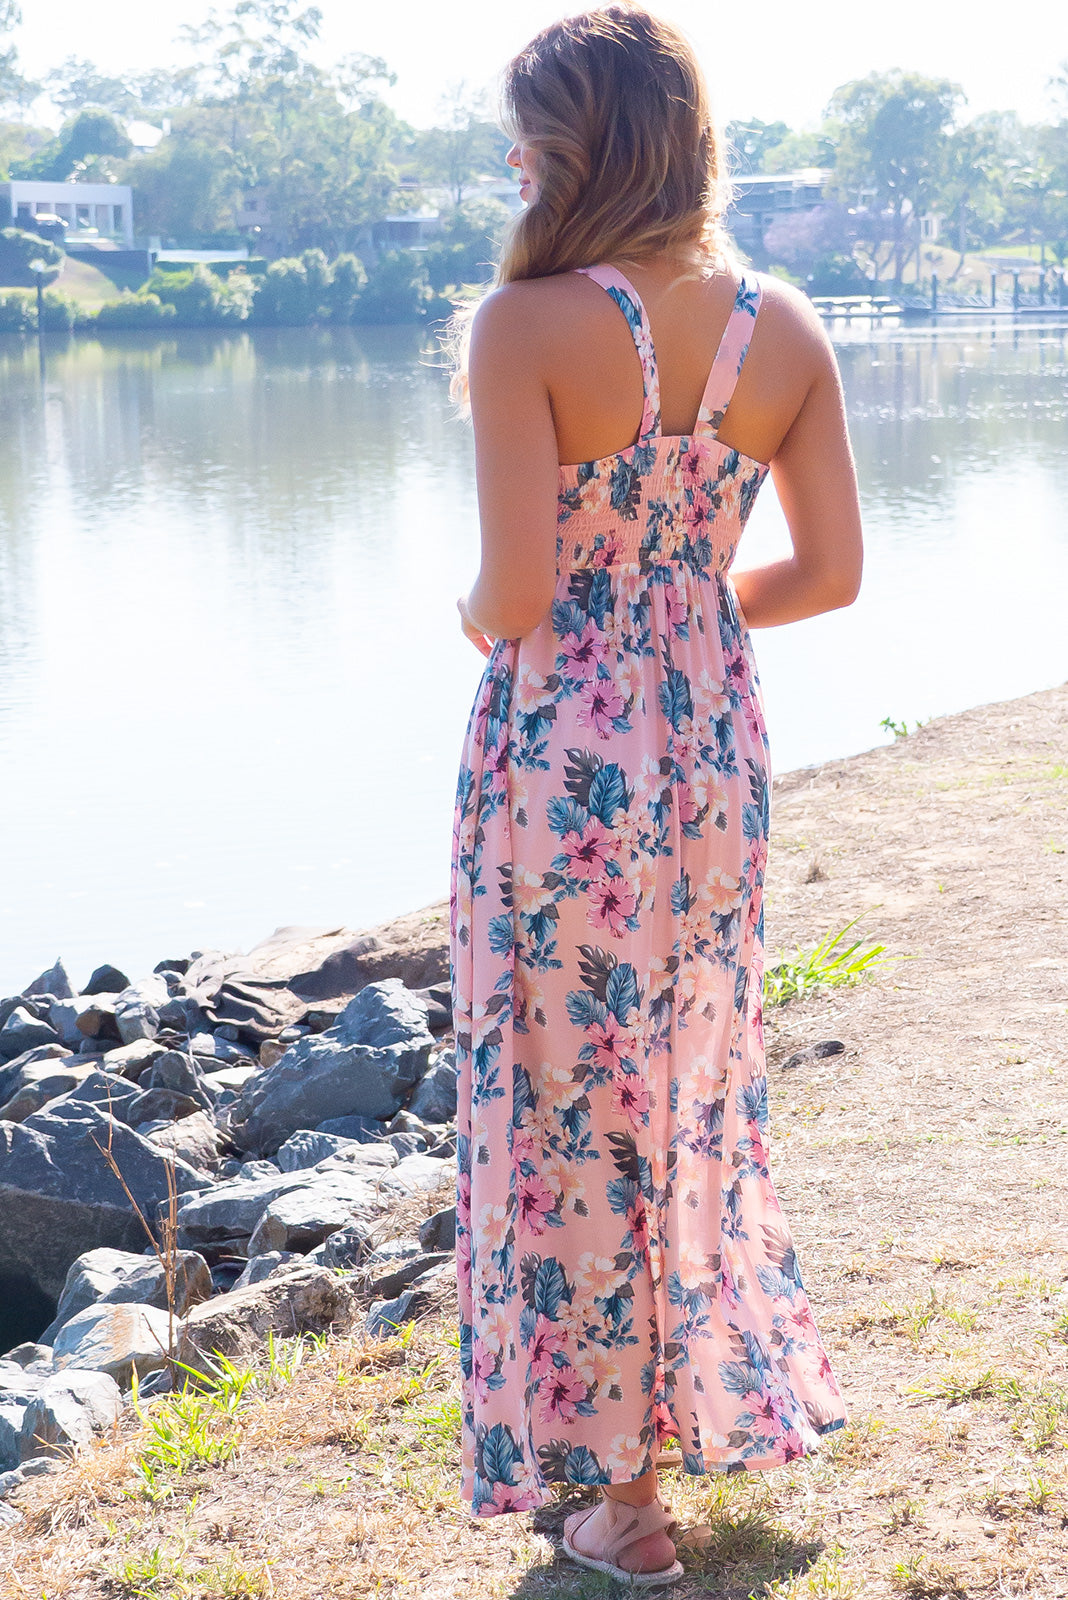 Ballito Bay Island Pink Maxi Dress, bohemian summer style, 100% rayon, lightweight sheer fabric, elastic shirring across back, sleeveless, keyhole tie design on bust, side pockets, pastel pink base with large pink, teal and white floral pattern.